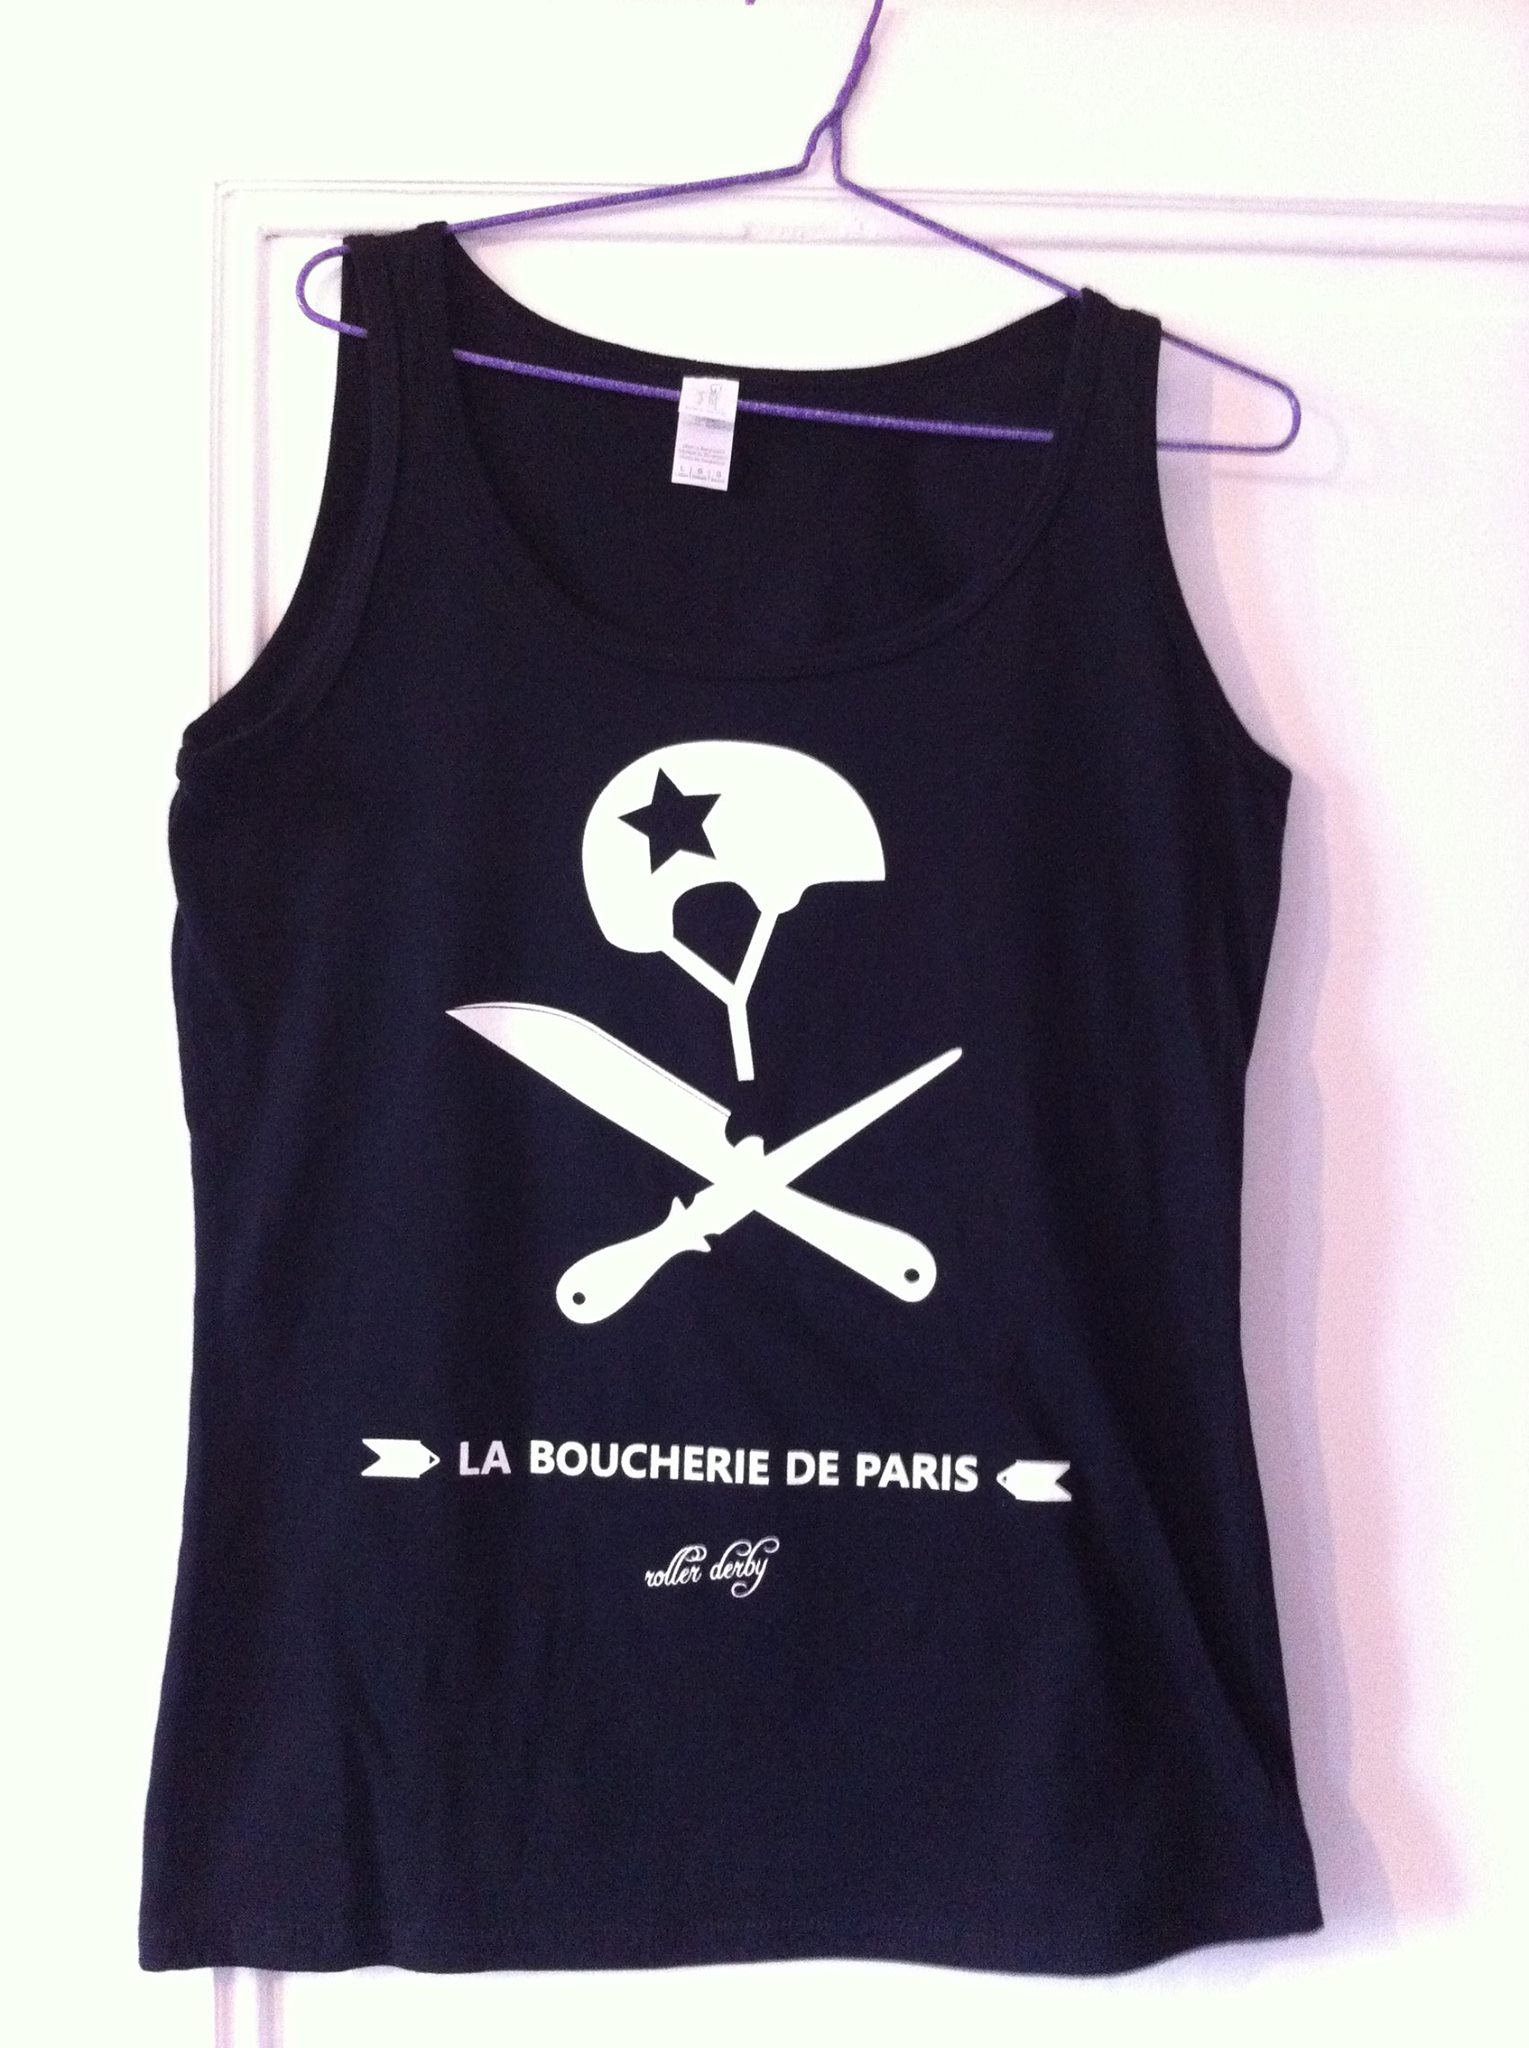 Tank top Boucherie 12€